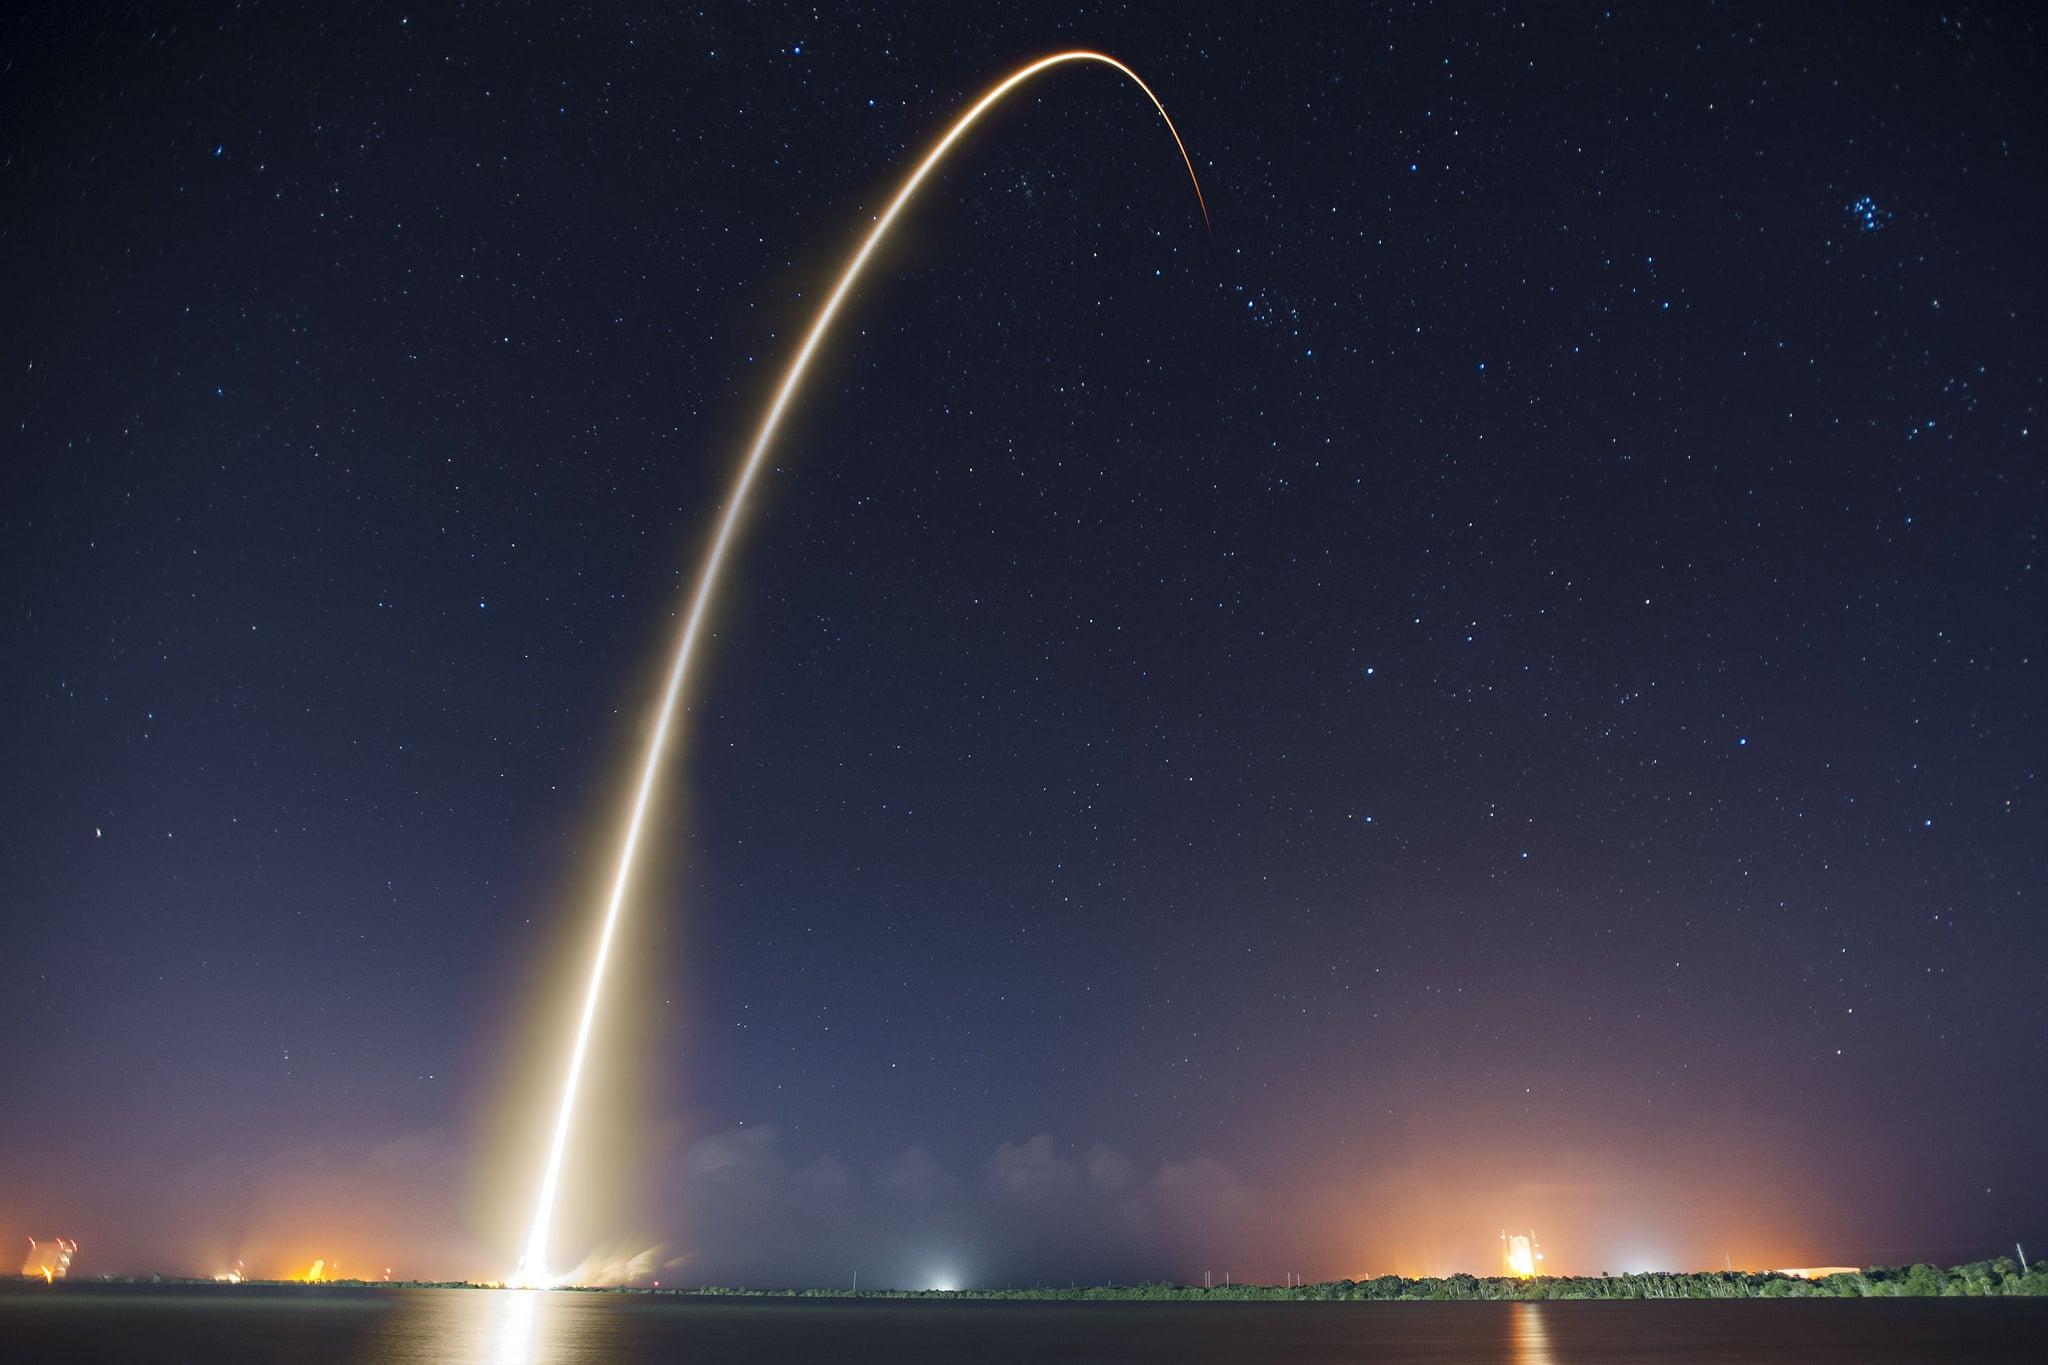 What Can IT Procurement Learn from SpaceX?